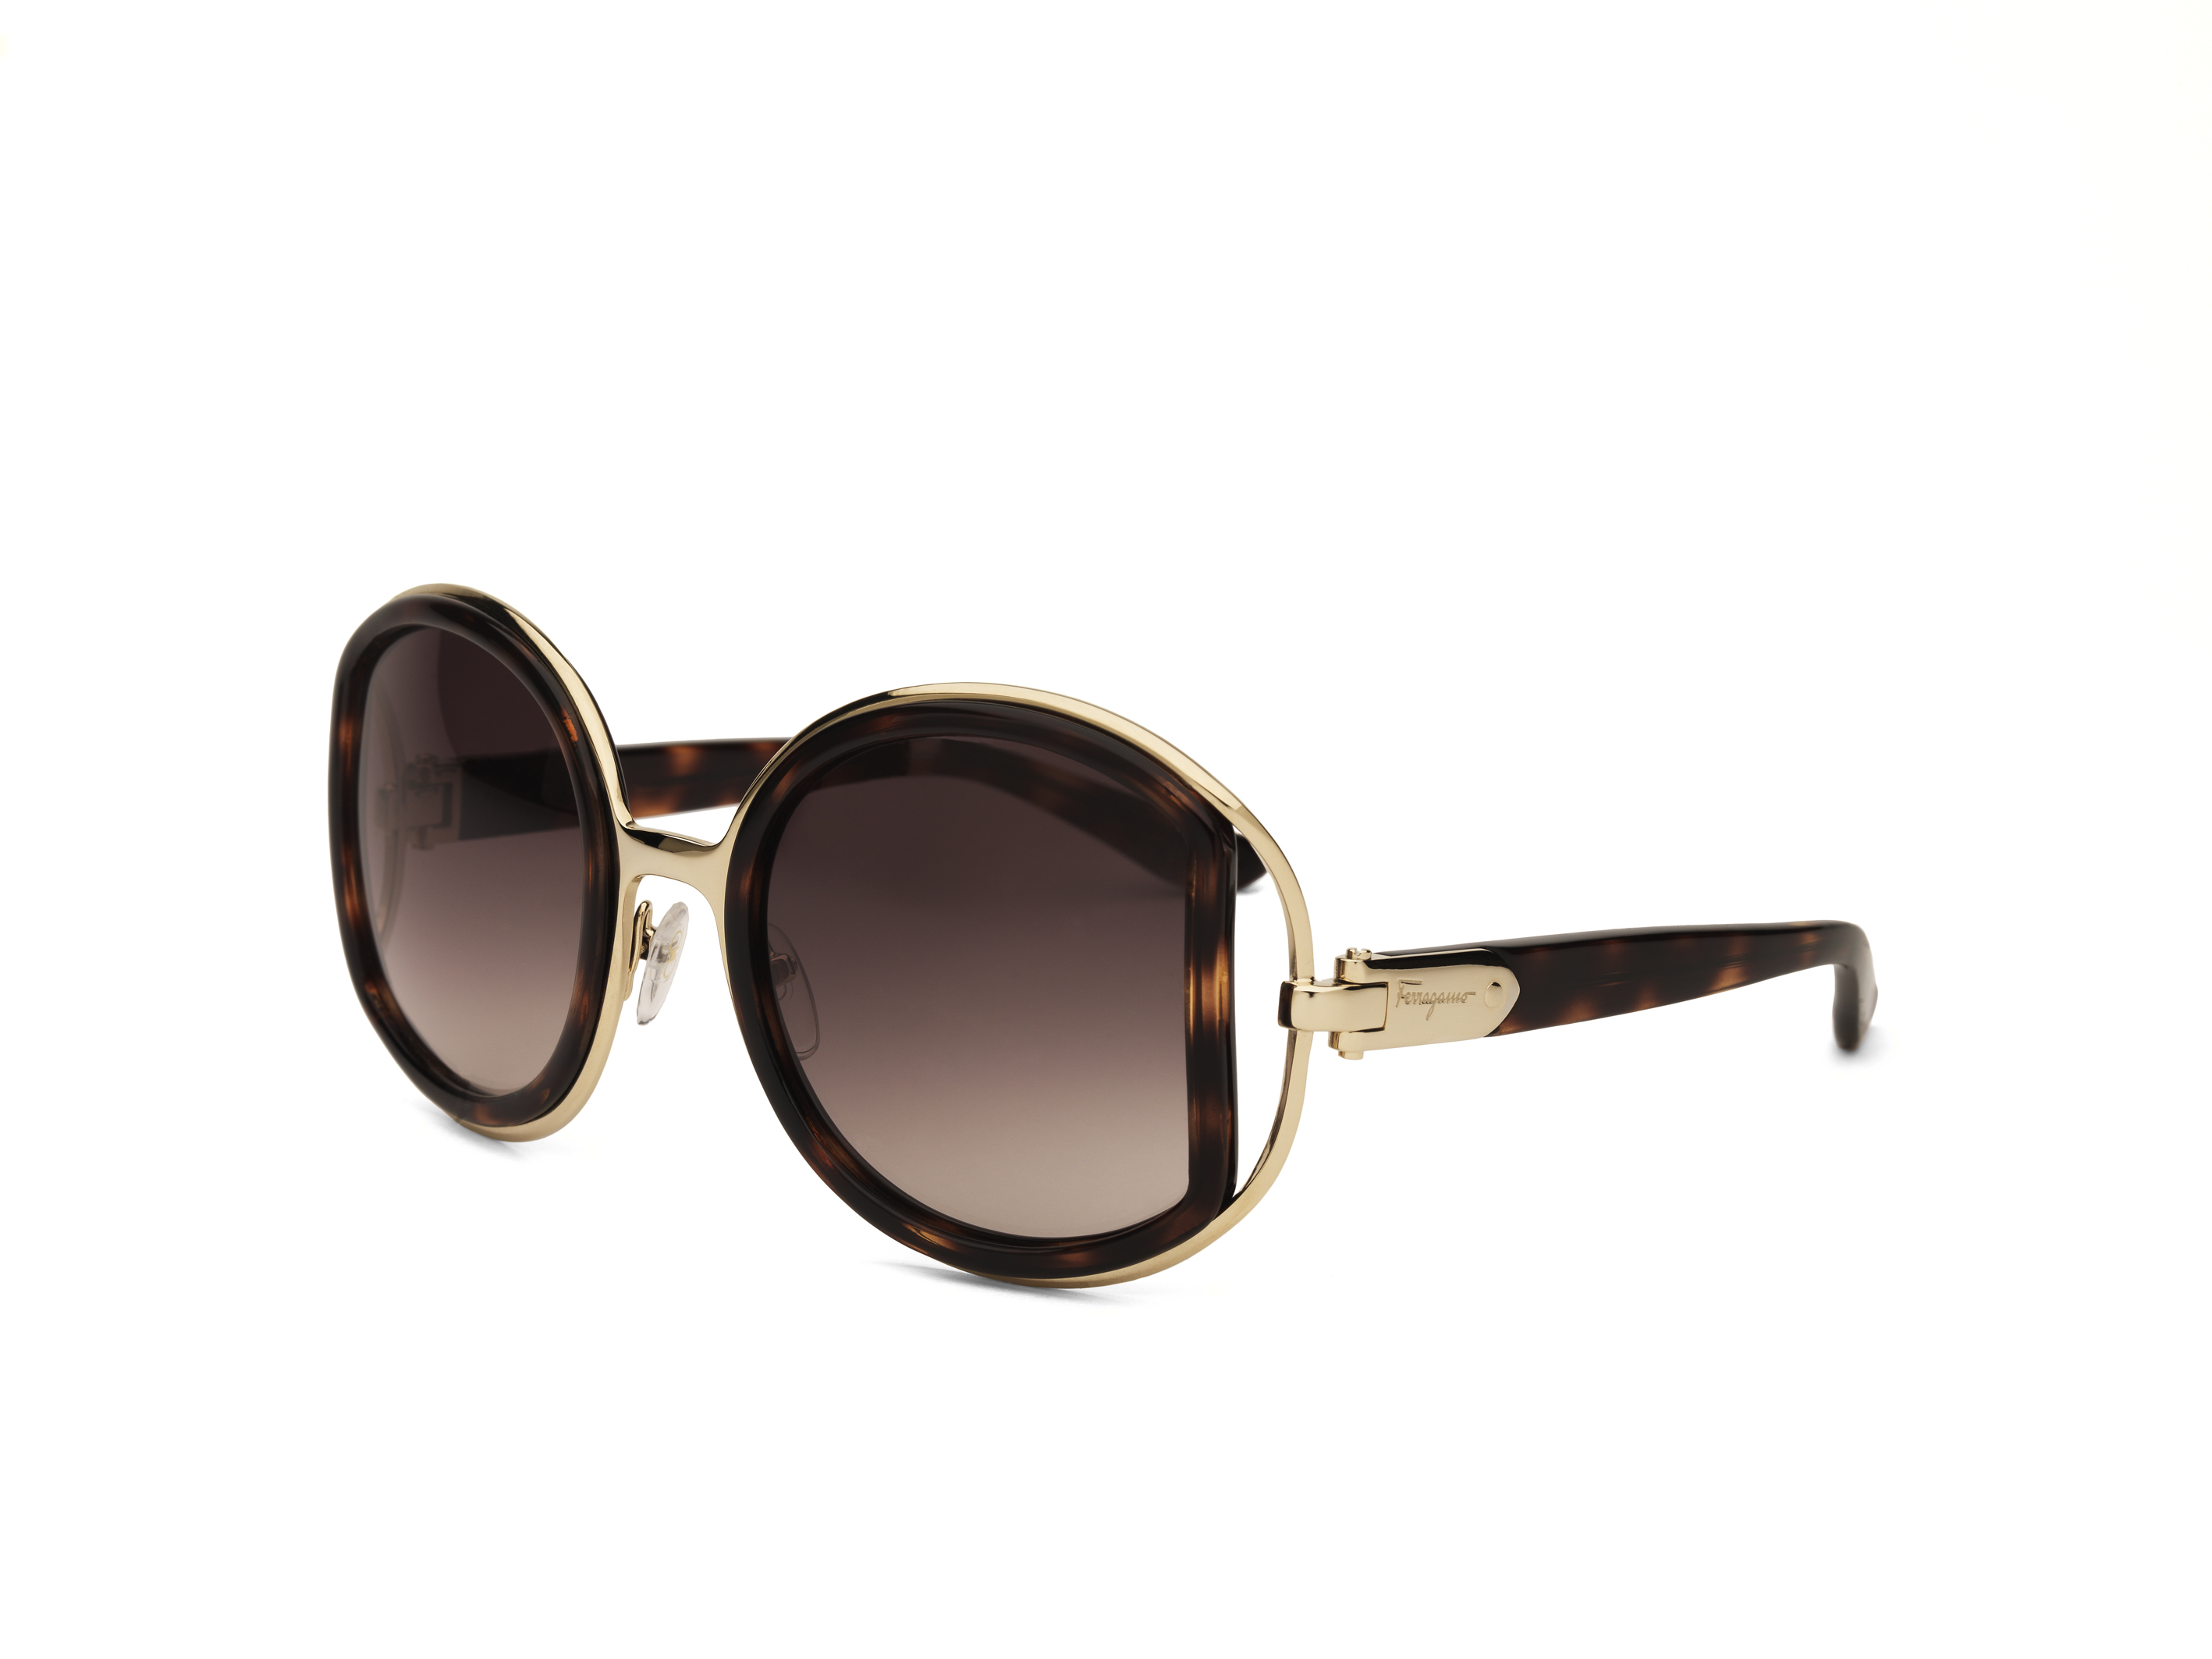 Salvatore-Ferragamo-Ferragamo-Buckle-Collection-glasses-2-